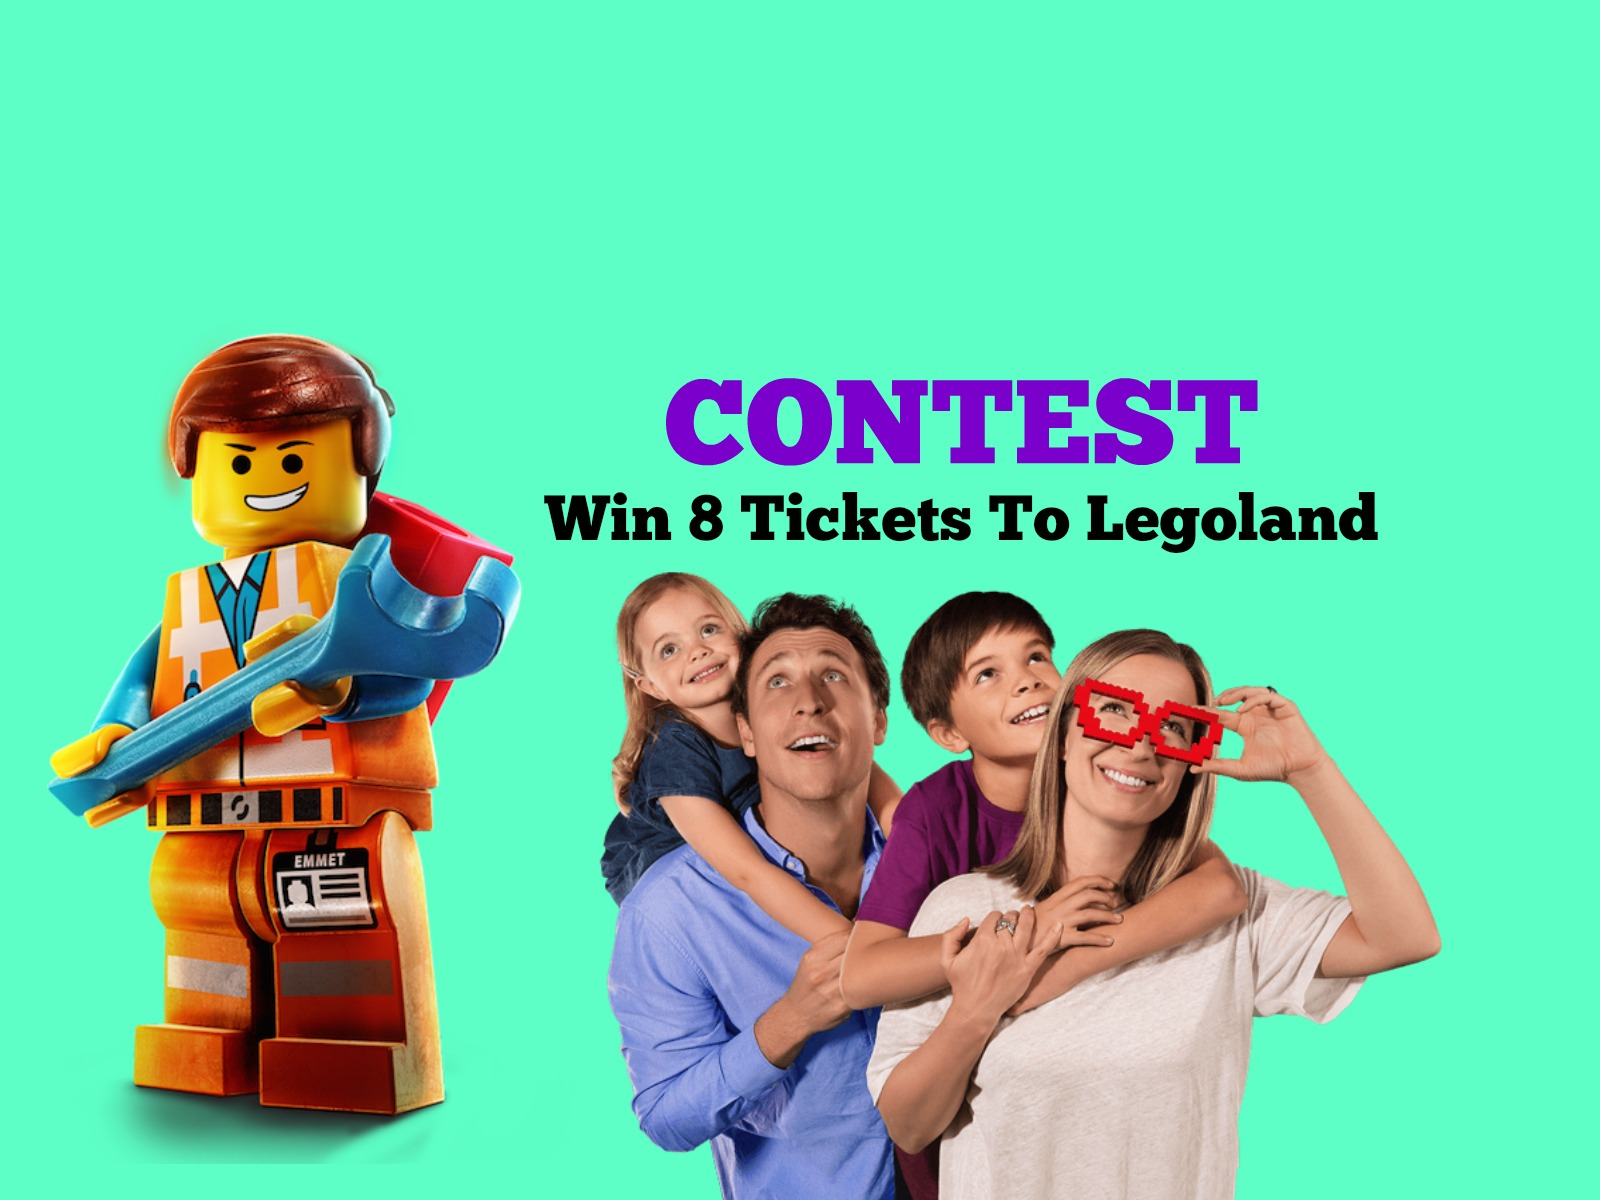 Contest: Win 8 Tickets To Legoland